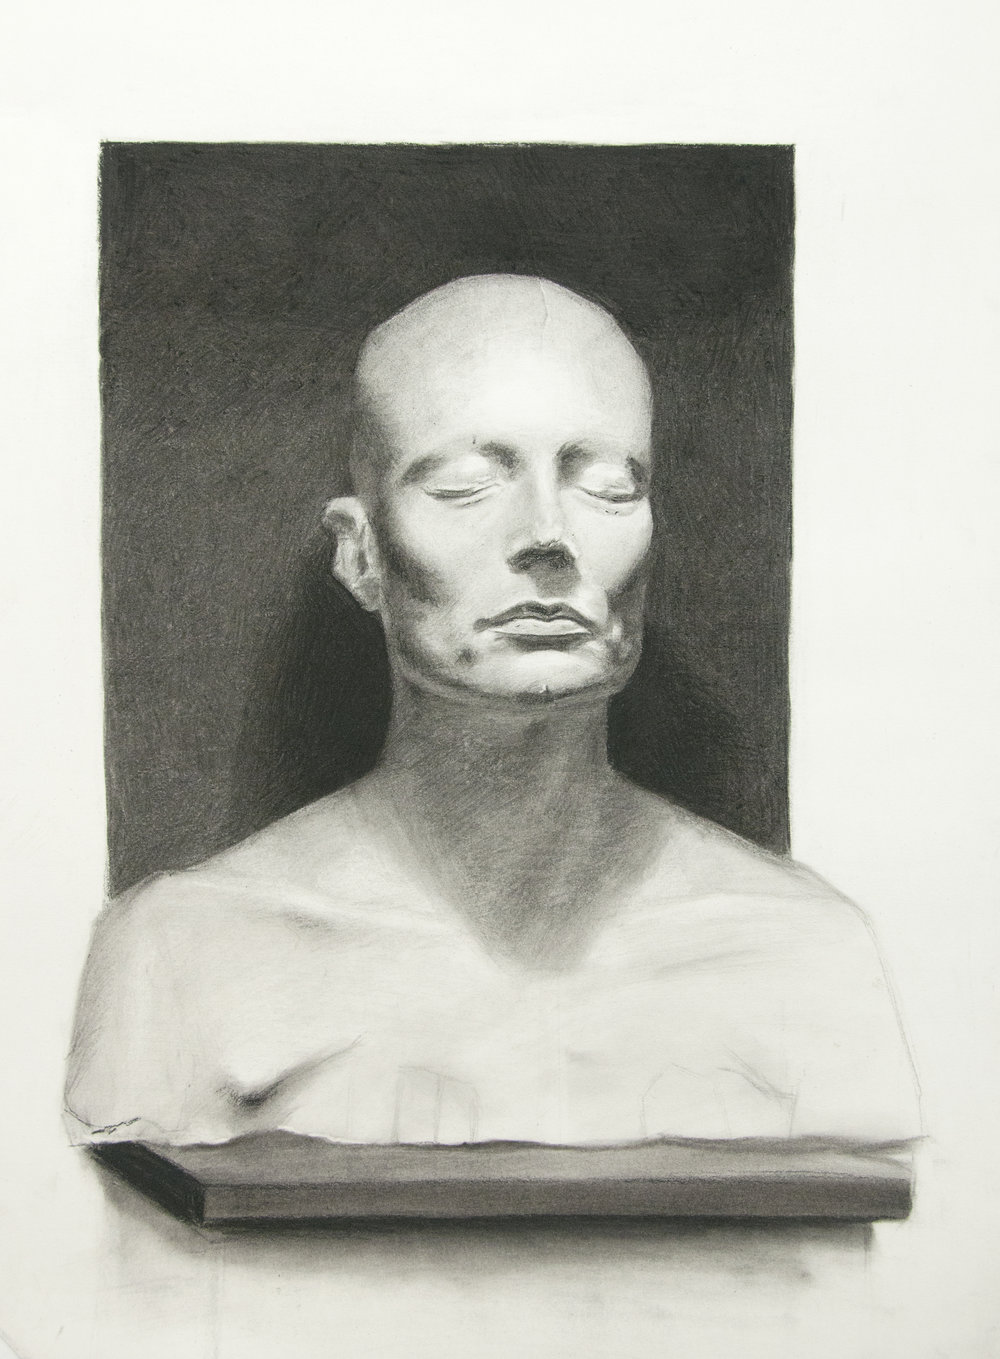 Charles Antolin, cast drawing student.